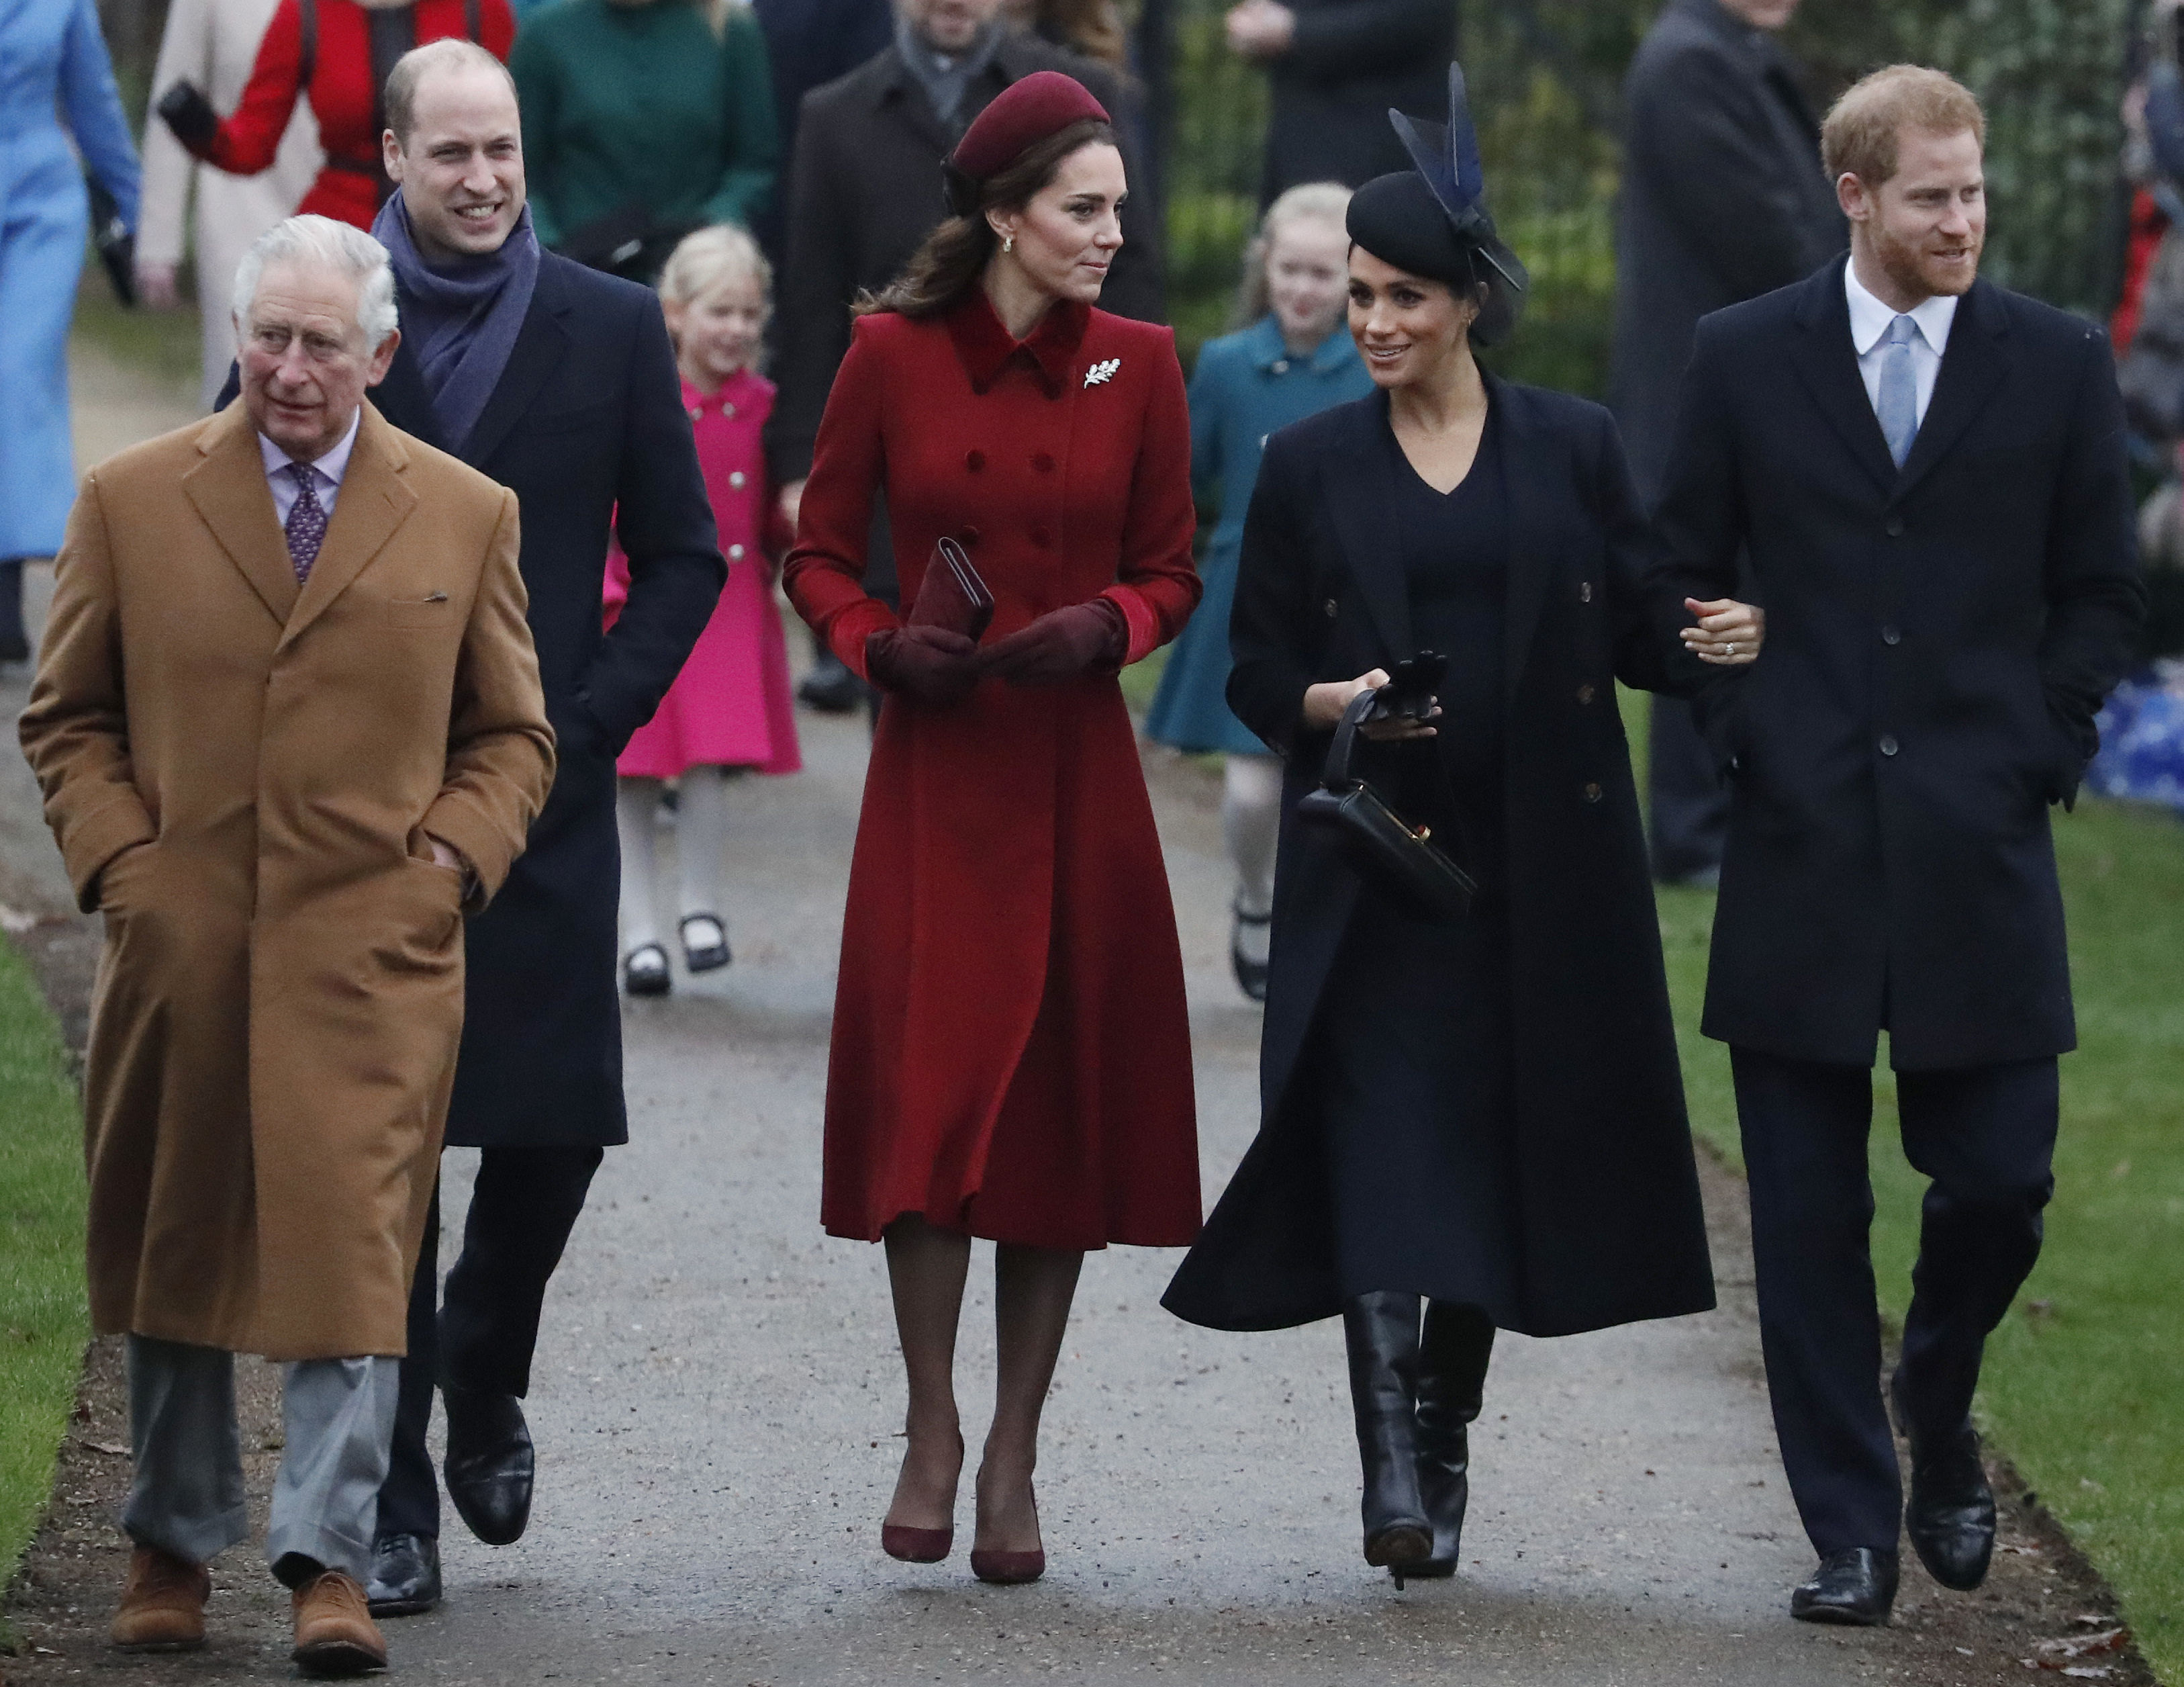 Britain's Royal family arrive to attend the Christmas day service at St Mary Magdalene Church in Sandringham in Norfolk, England, Tuesday, Dec. 25, 2018